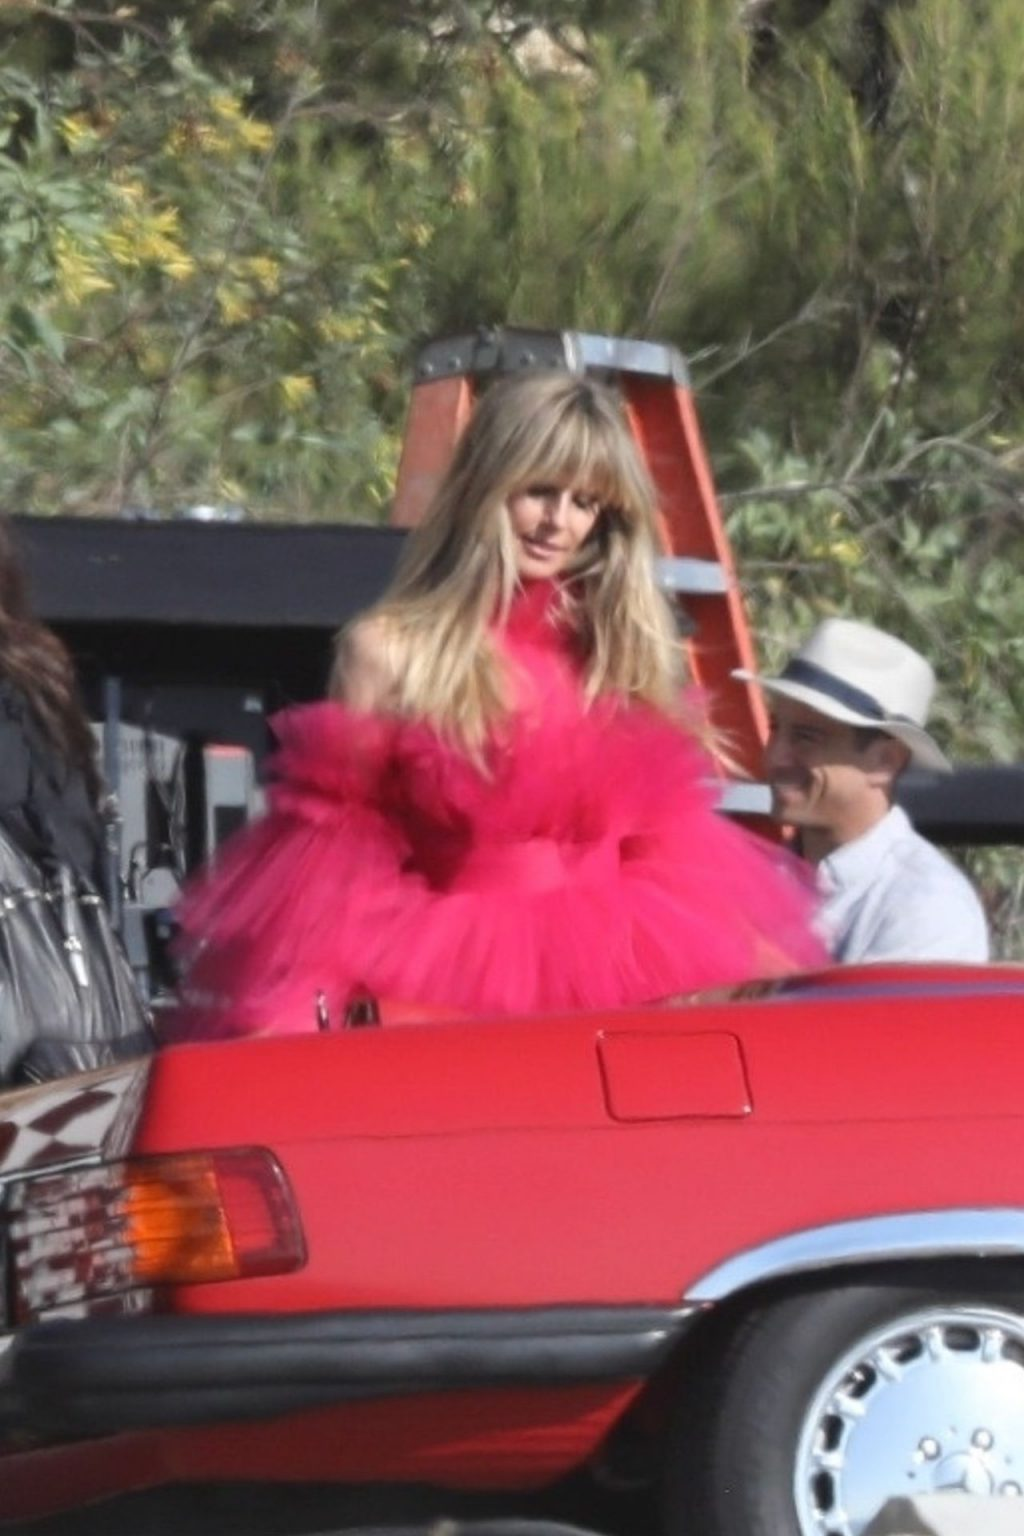 Heidi Klum Slips Into a Red Dress in Malibu (72 Photos)